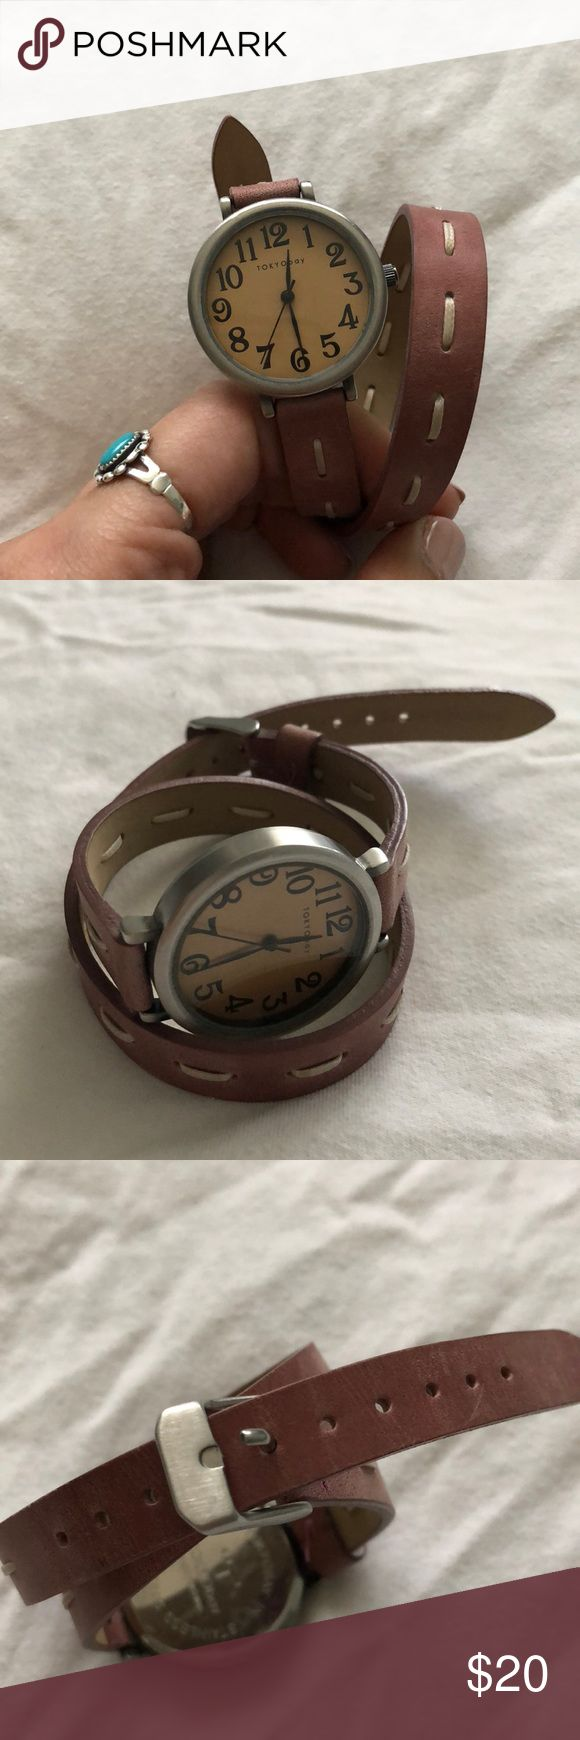 Tokyo Bay leather wrap watch Brand new never worn watch. Tokyo Bay Brand. Leather strap wrap style watch. Works perfectly but Needs battery. TOKYObay Accessories Watches